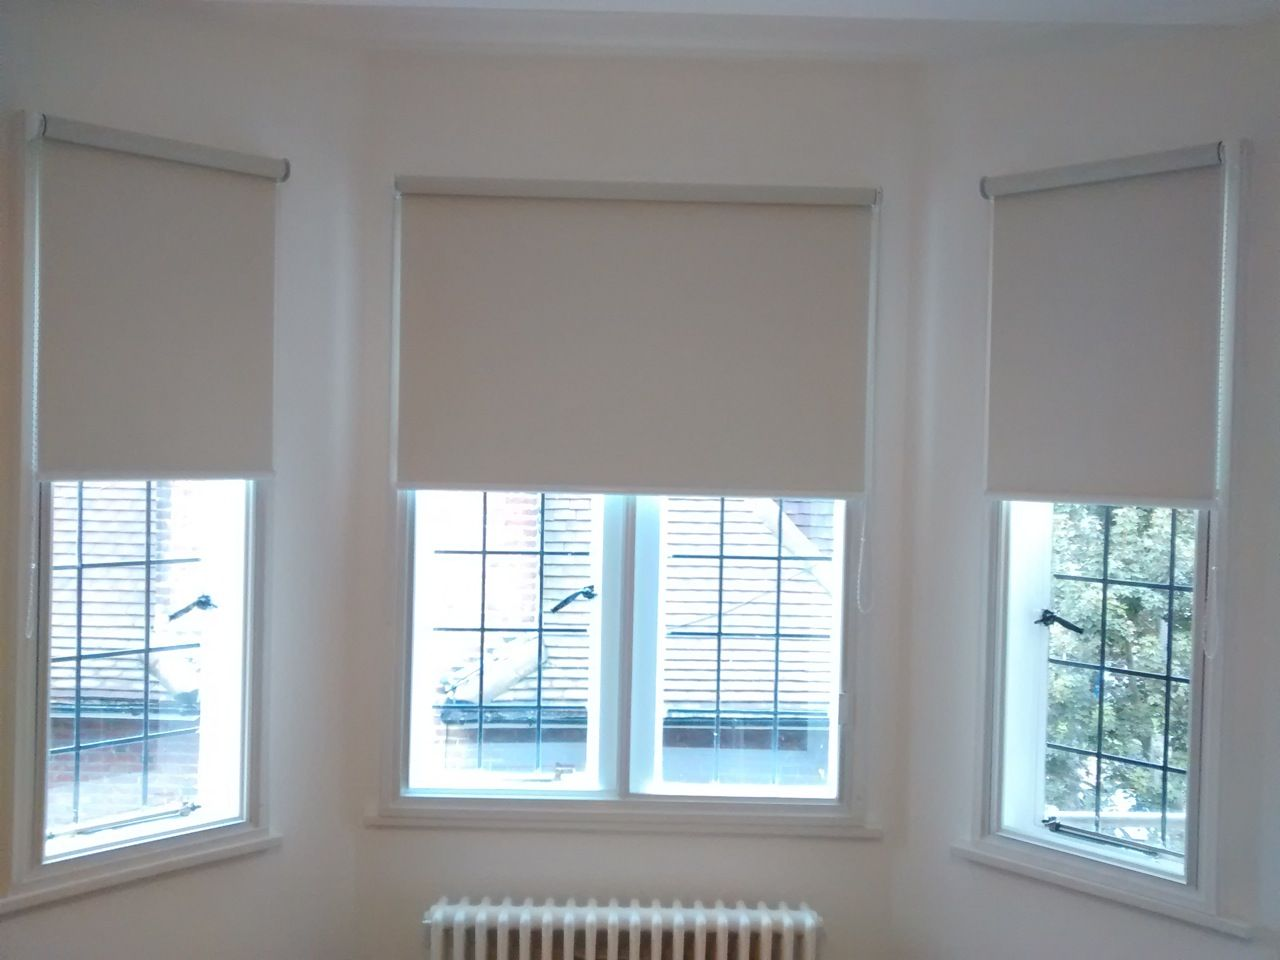 Blackout Roller Blinds Ed To A Bay Window